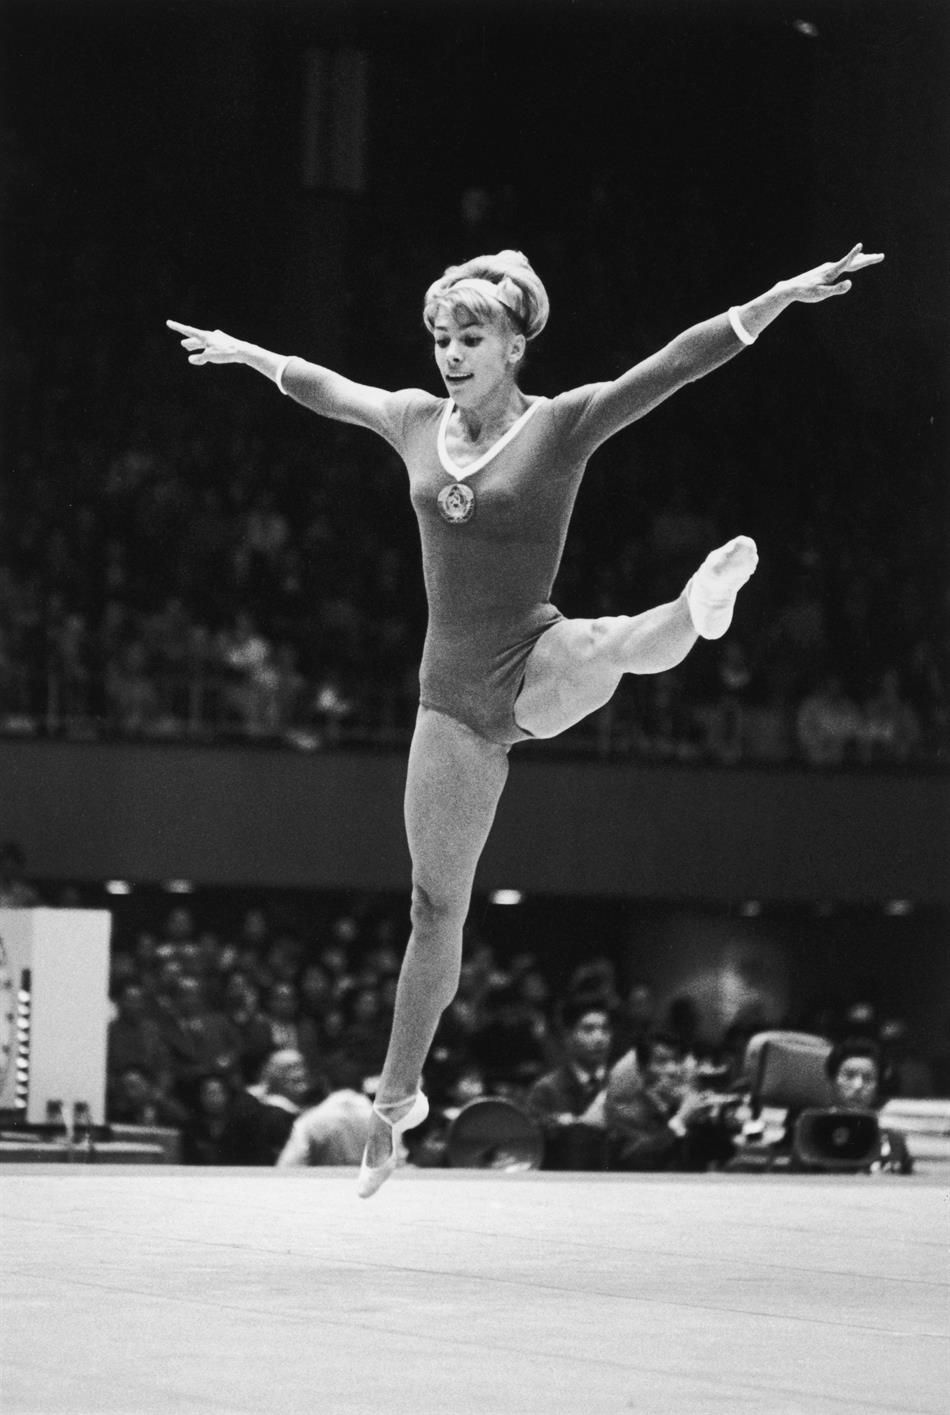 Larisa Latynina 18 Olympic medals nudes (64 foto and video), Topless, Sideboobs, Boobs, legs 2006